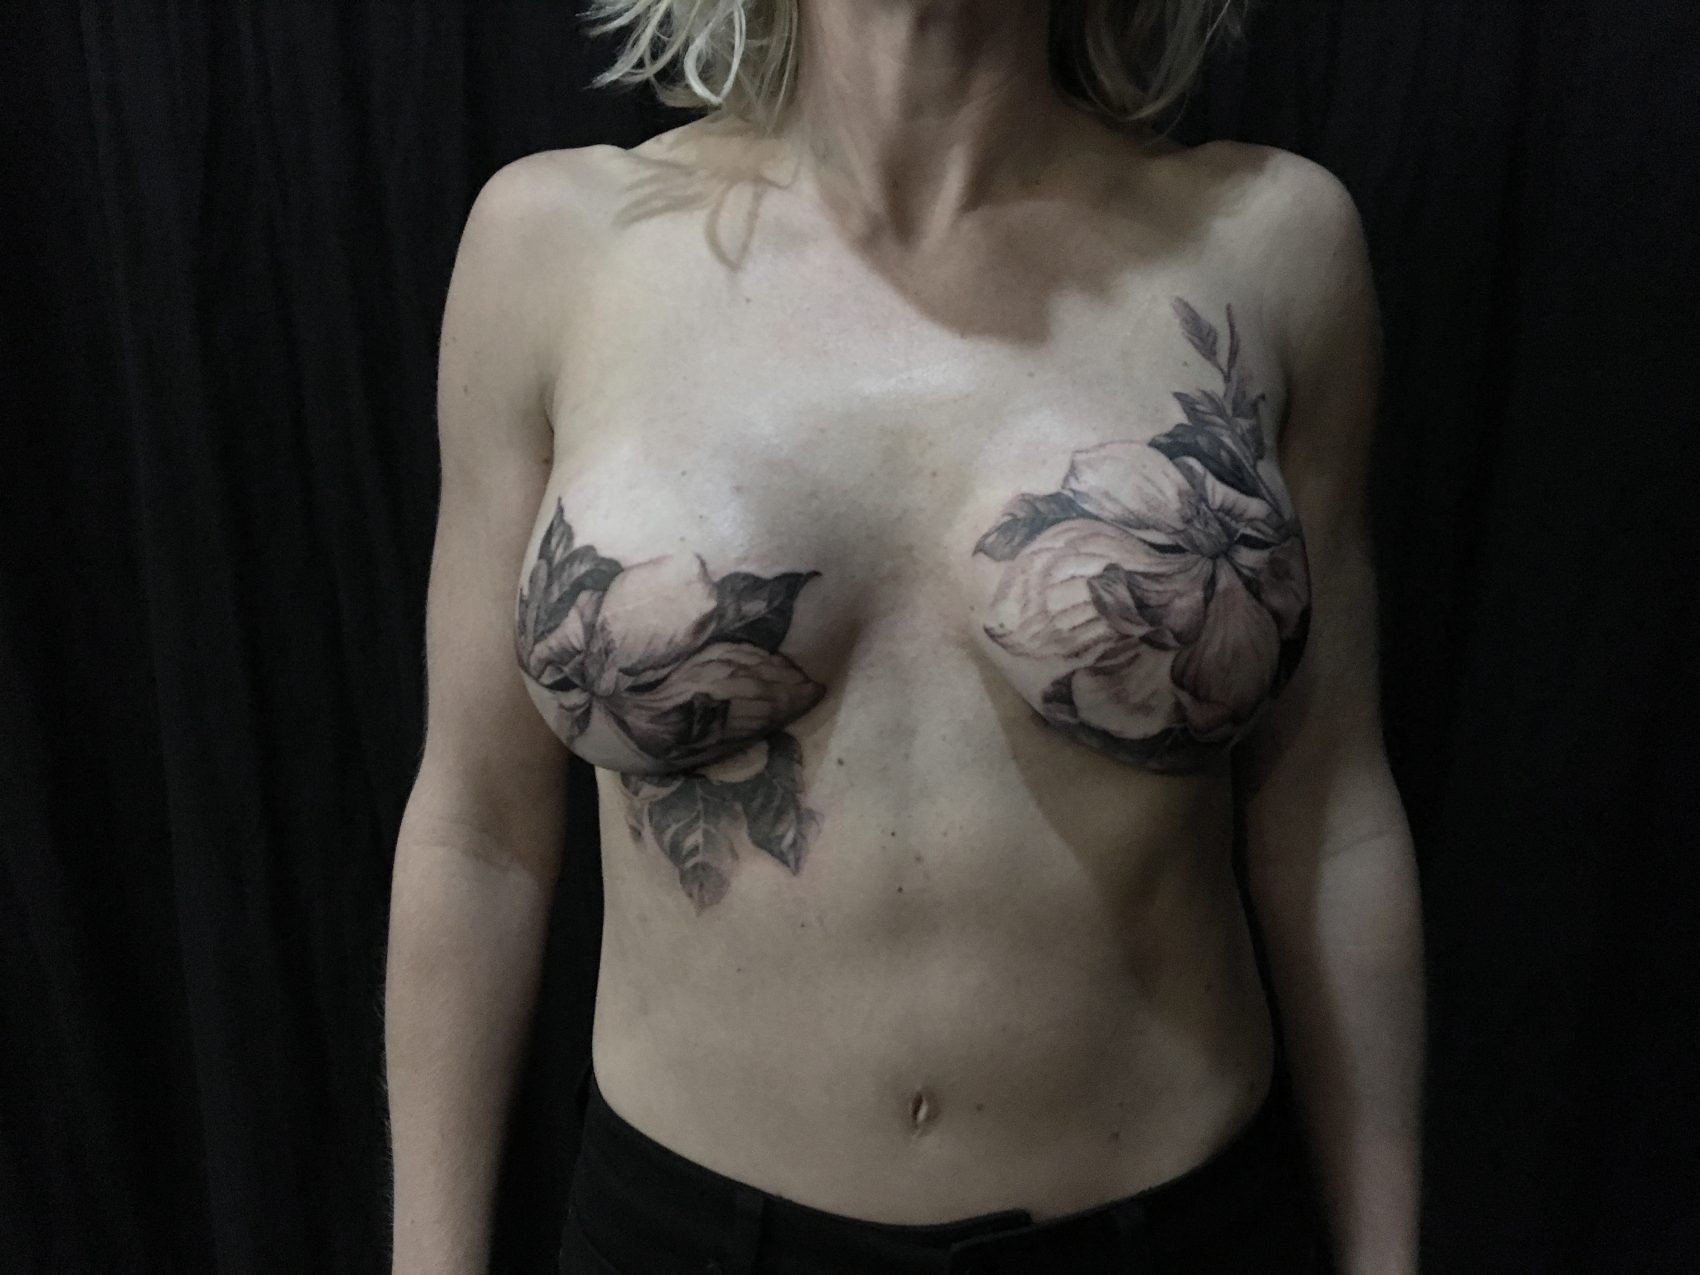 Reclaiming Their Beauty Tattoo Artist Inks Exquisite Flowers Over